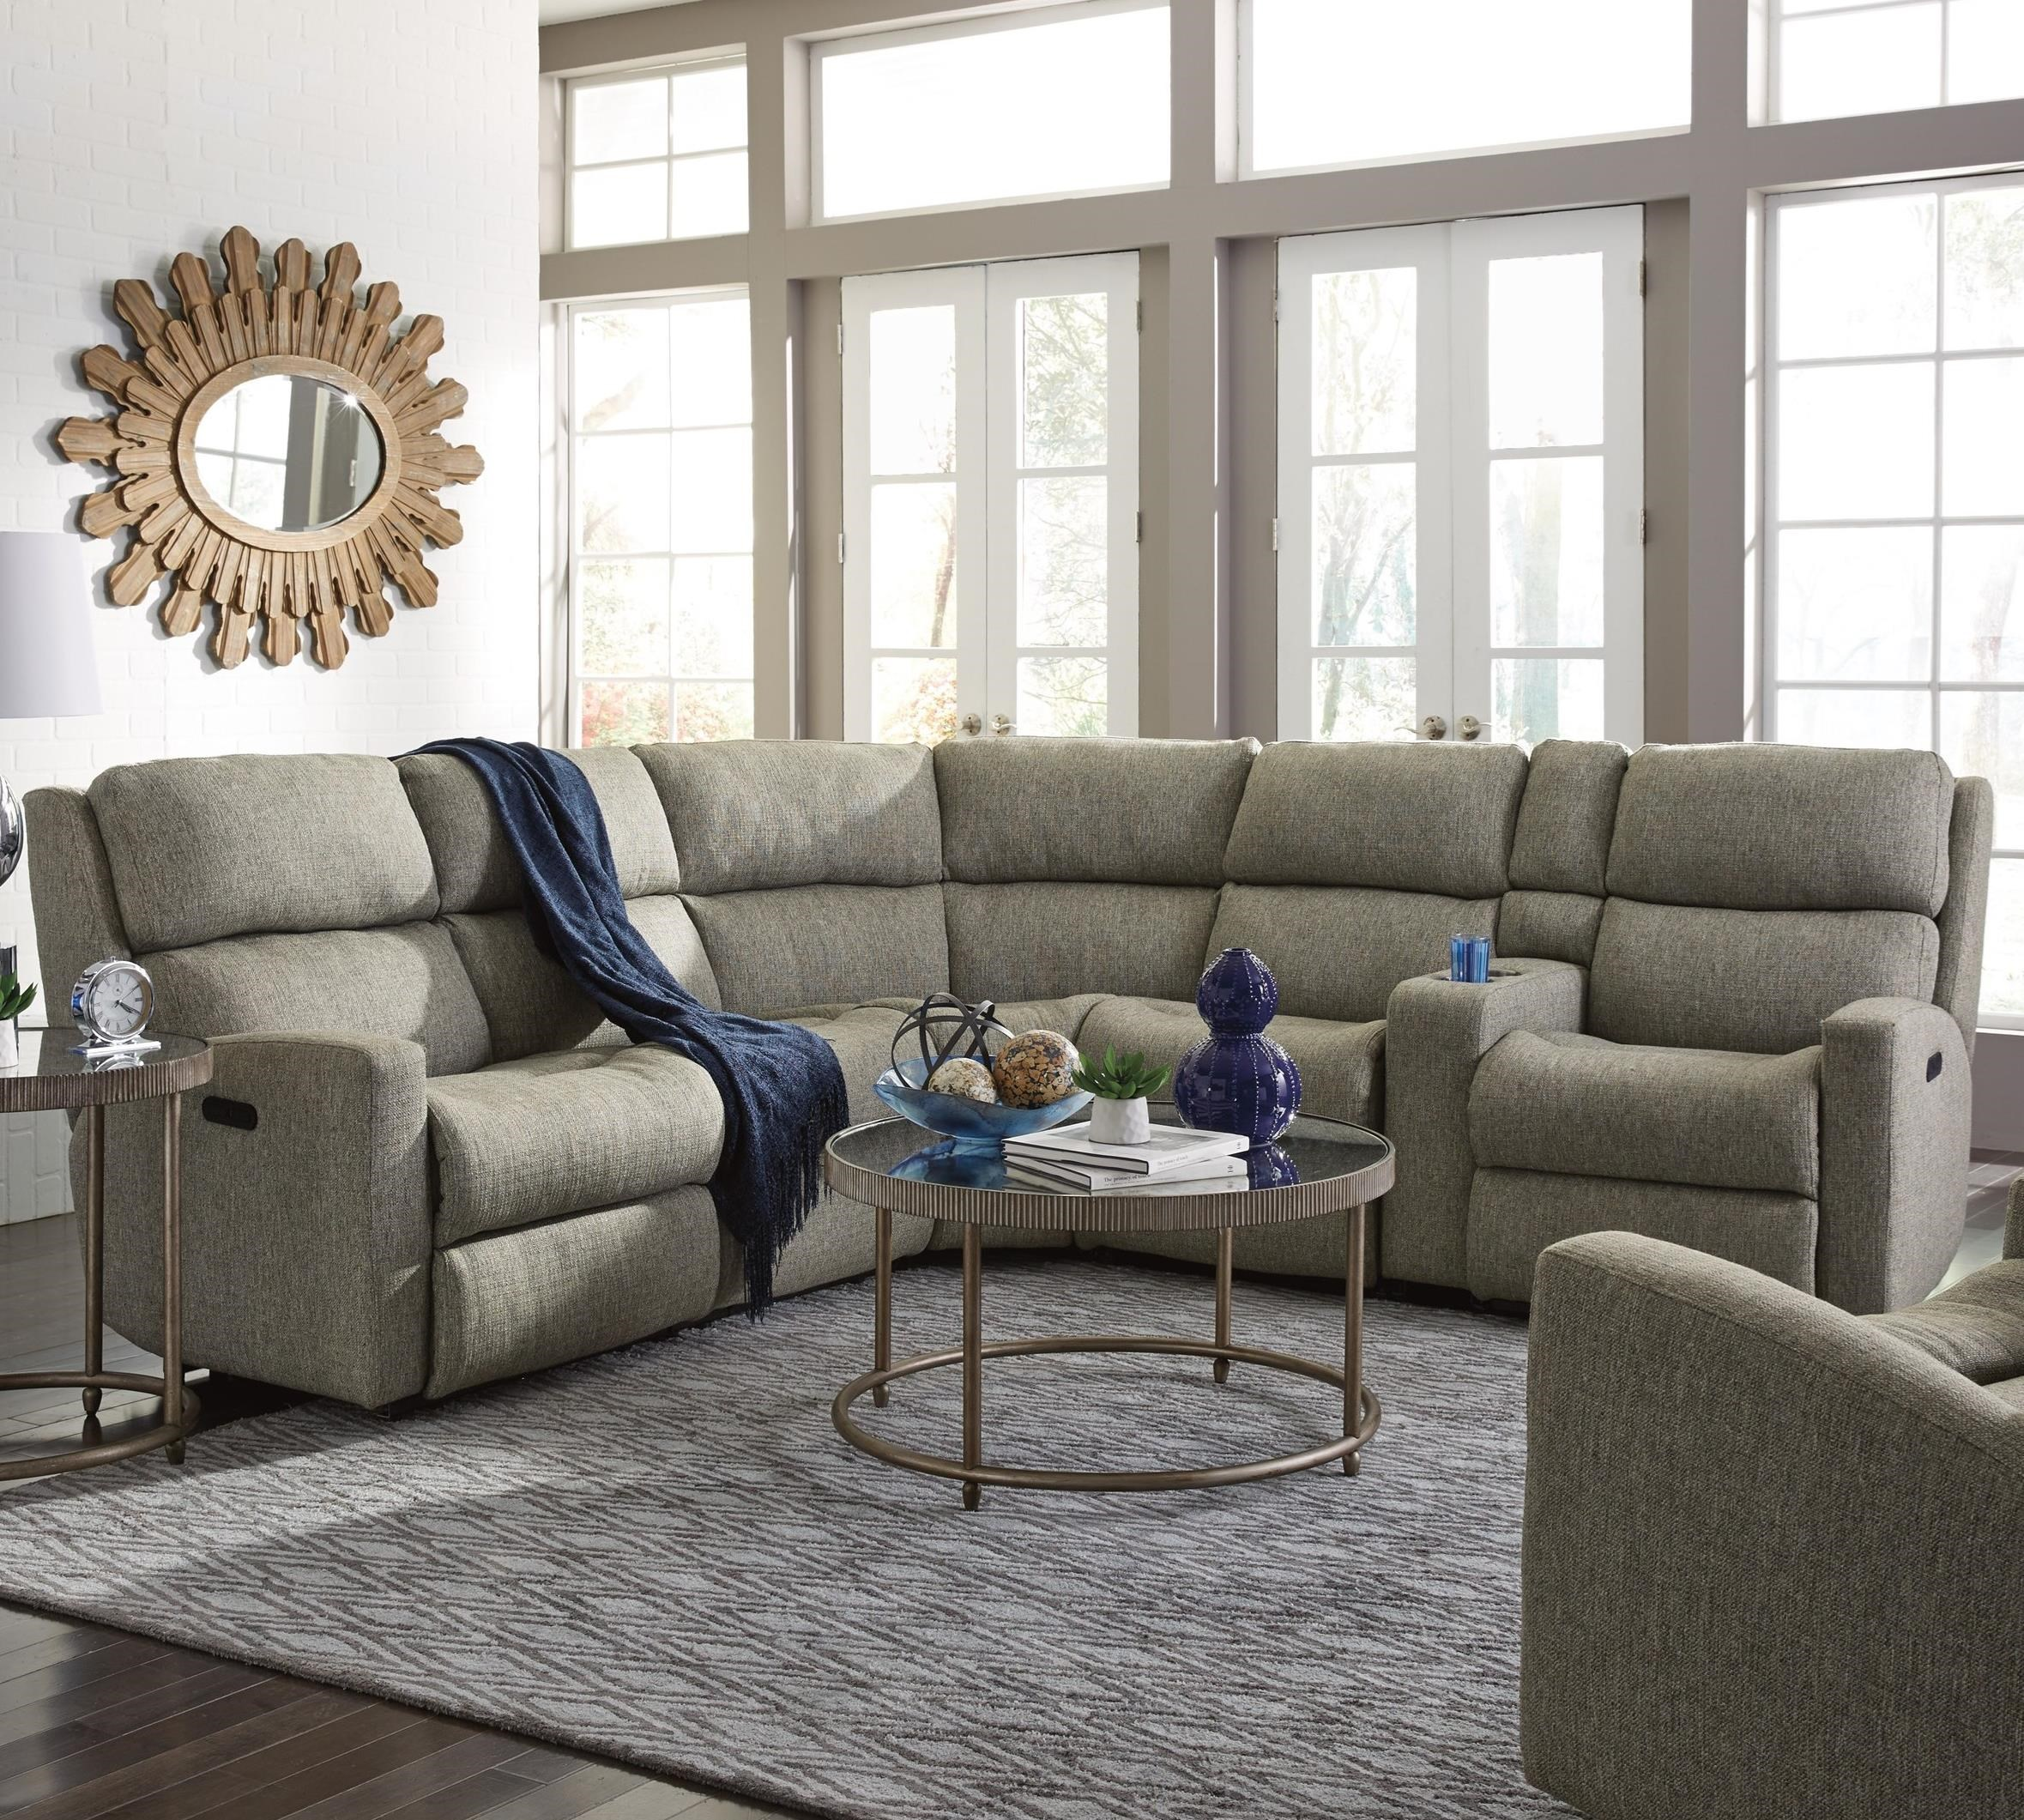 Flexsteel Catalina 6 Pc Reclining Sectional w/ Pwr Headrests - Item Number: 2900-57H+59H+23+19+72+58H